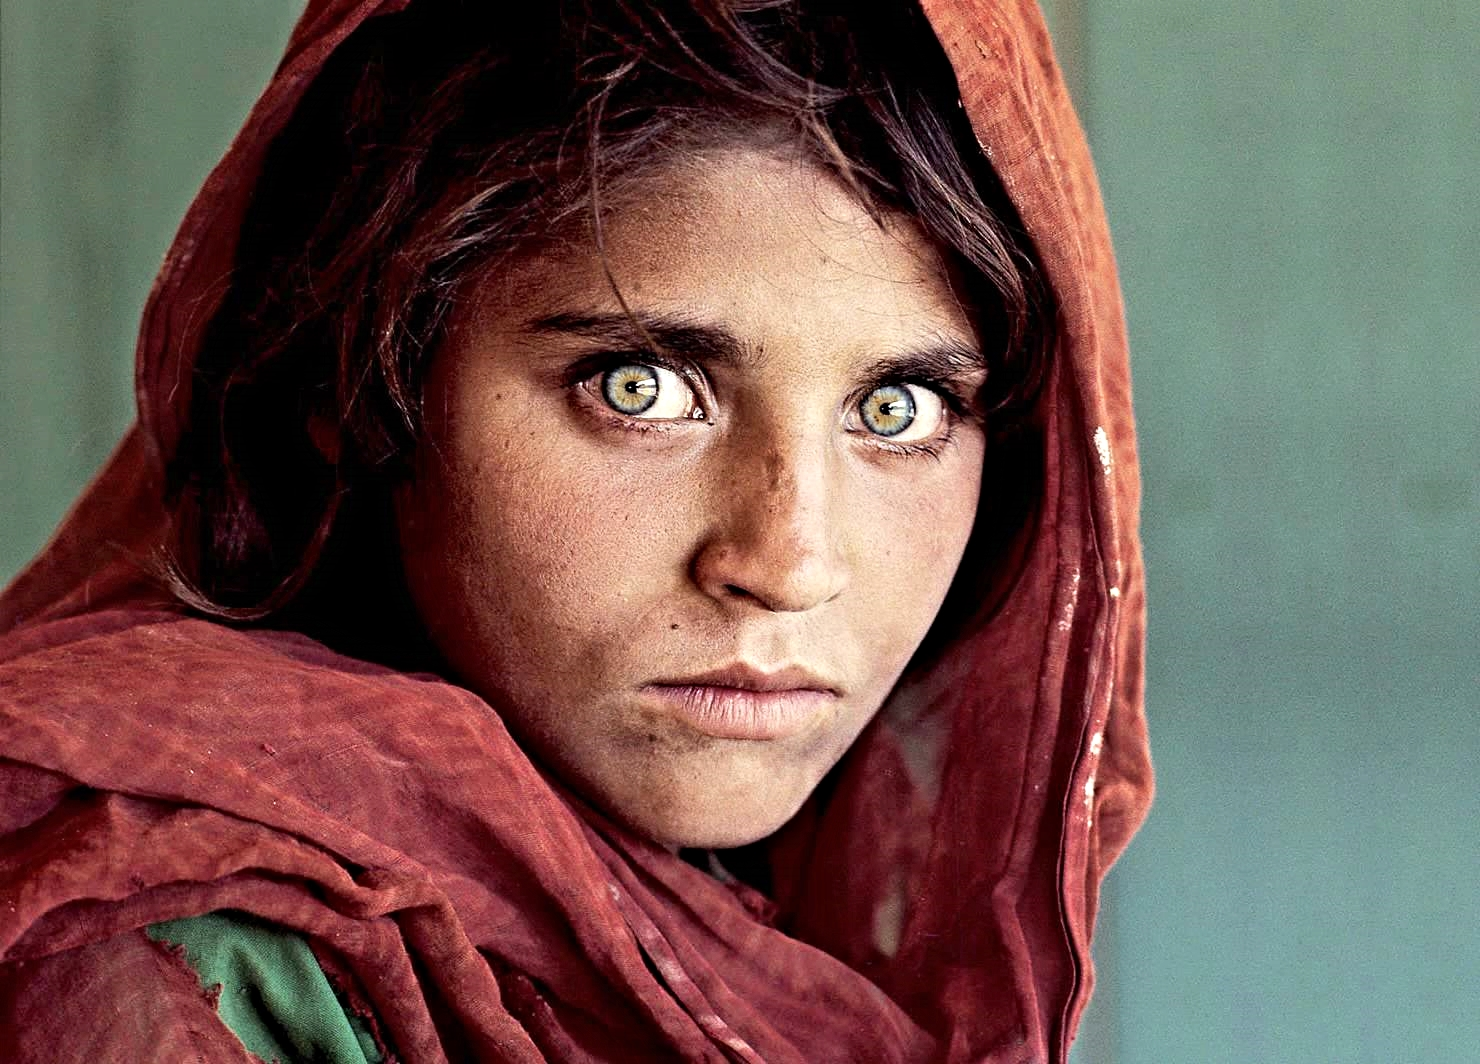 Afghan-Girl-The-Most-Famous-Picture-In-National-Geographics-114-Year-History-2.jpg